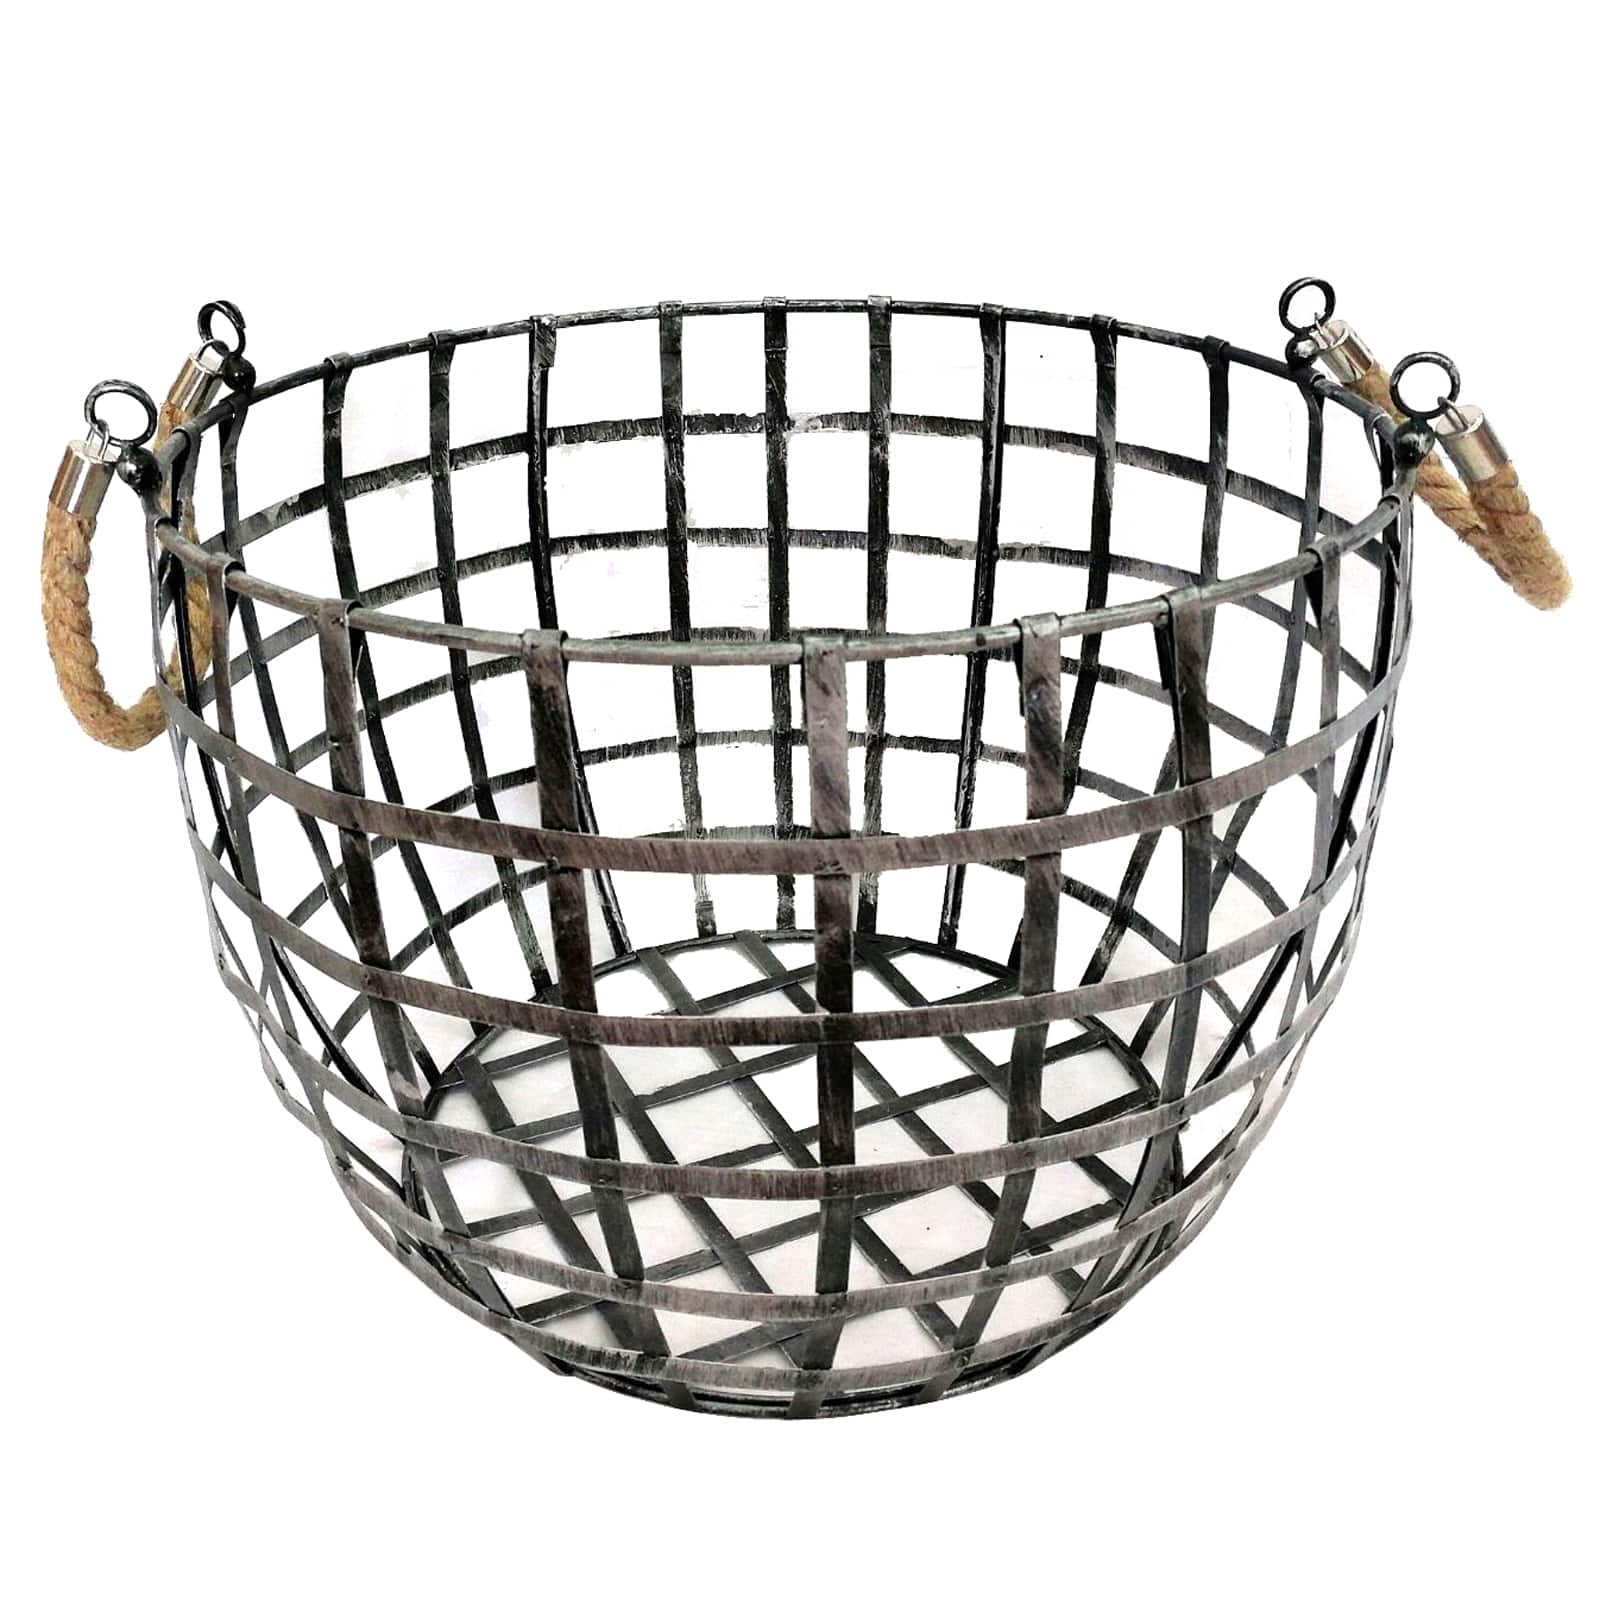 Buy the Large Round Metal Basket with Rope Handle By